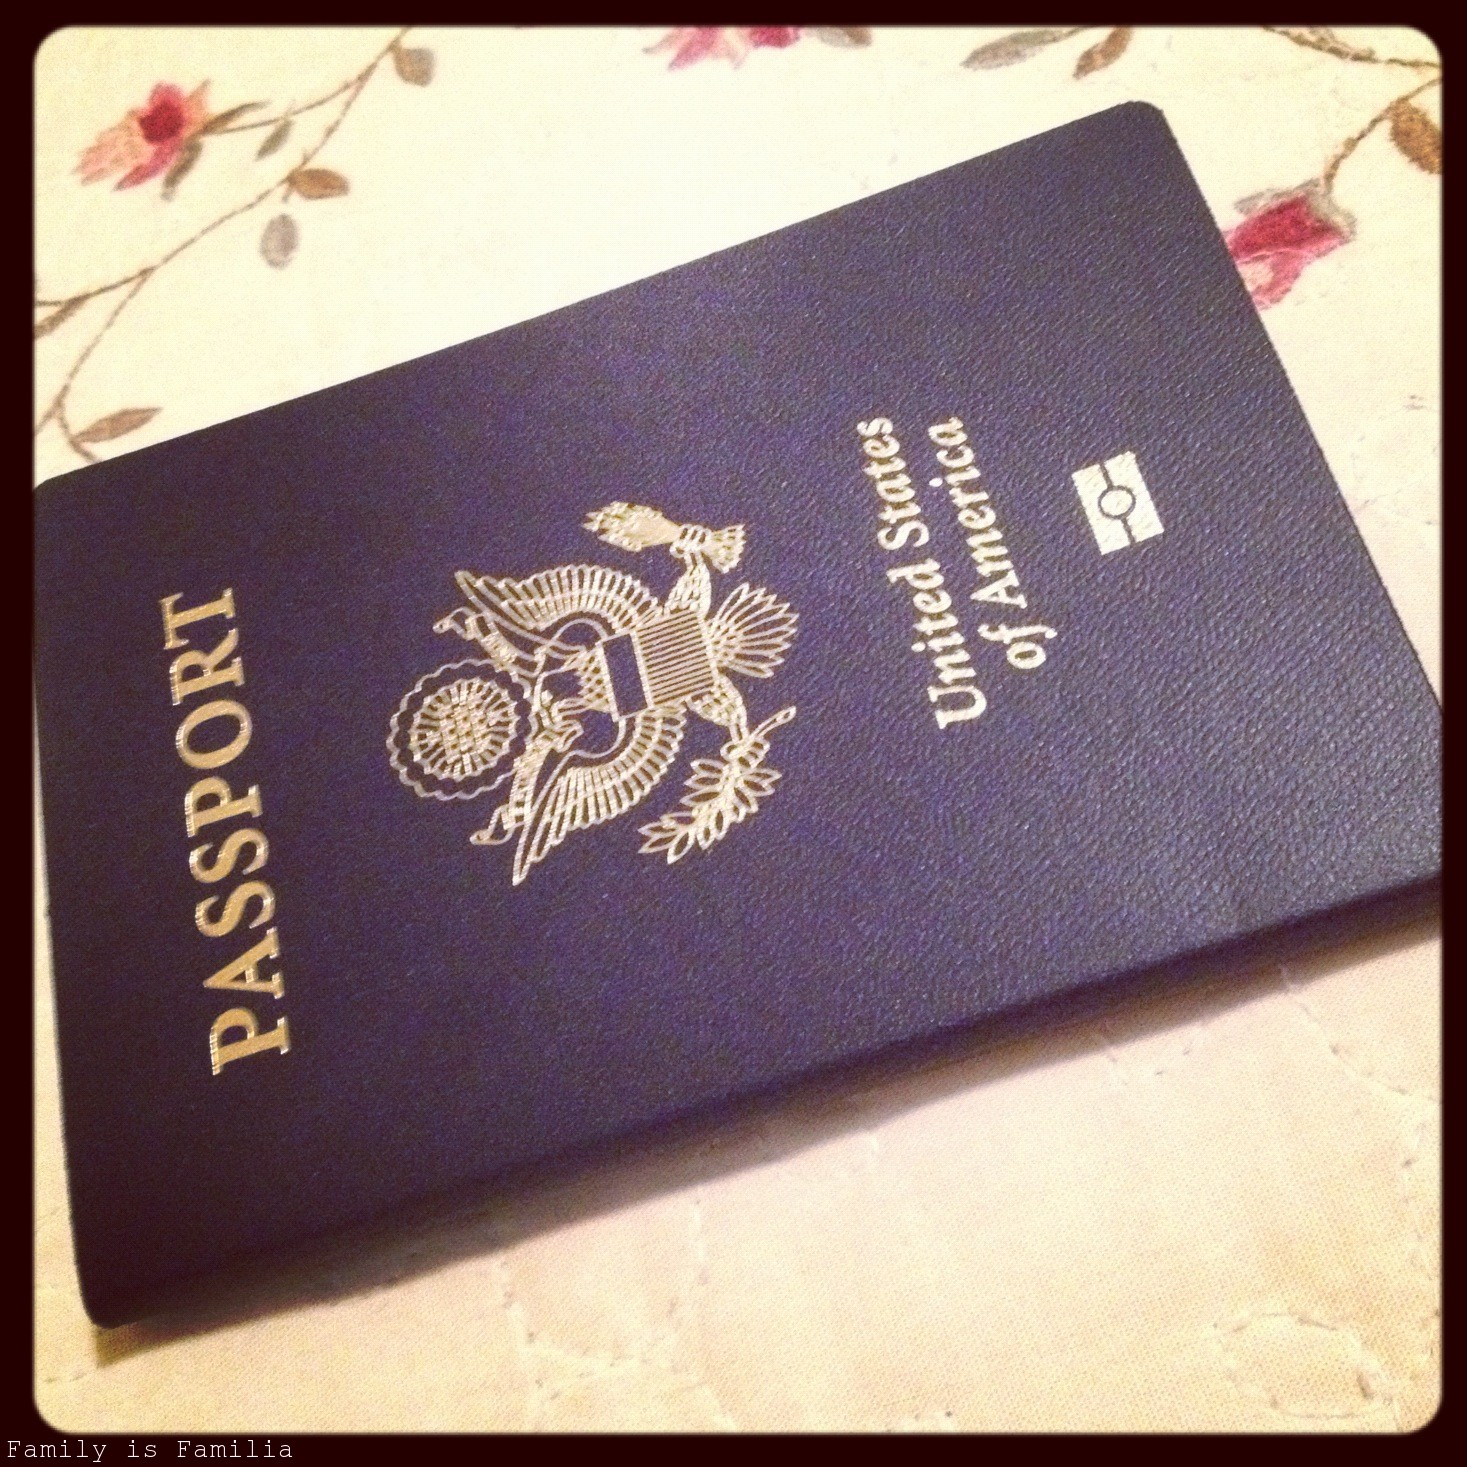 officially-done-my-first-passport